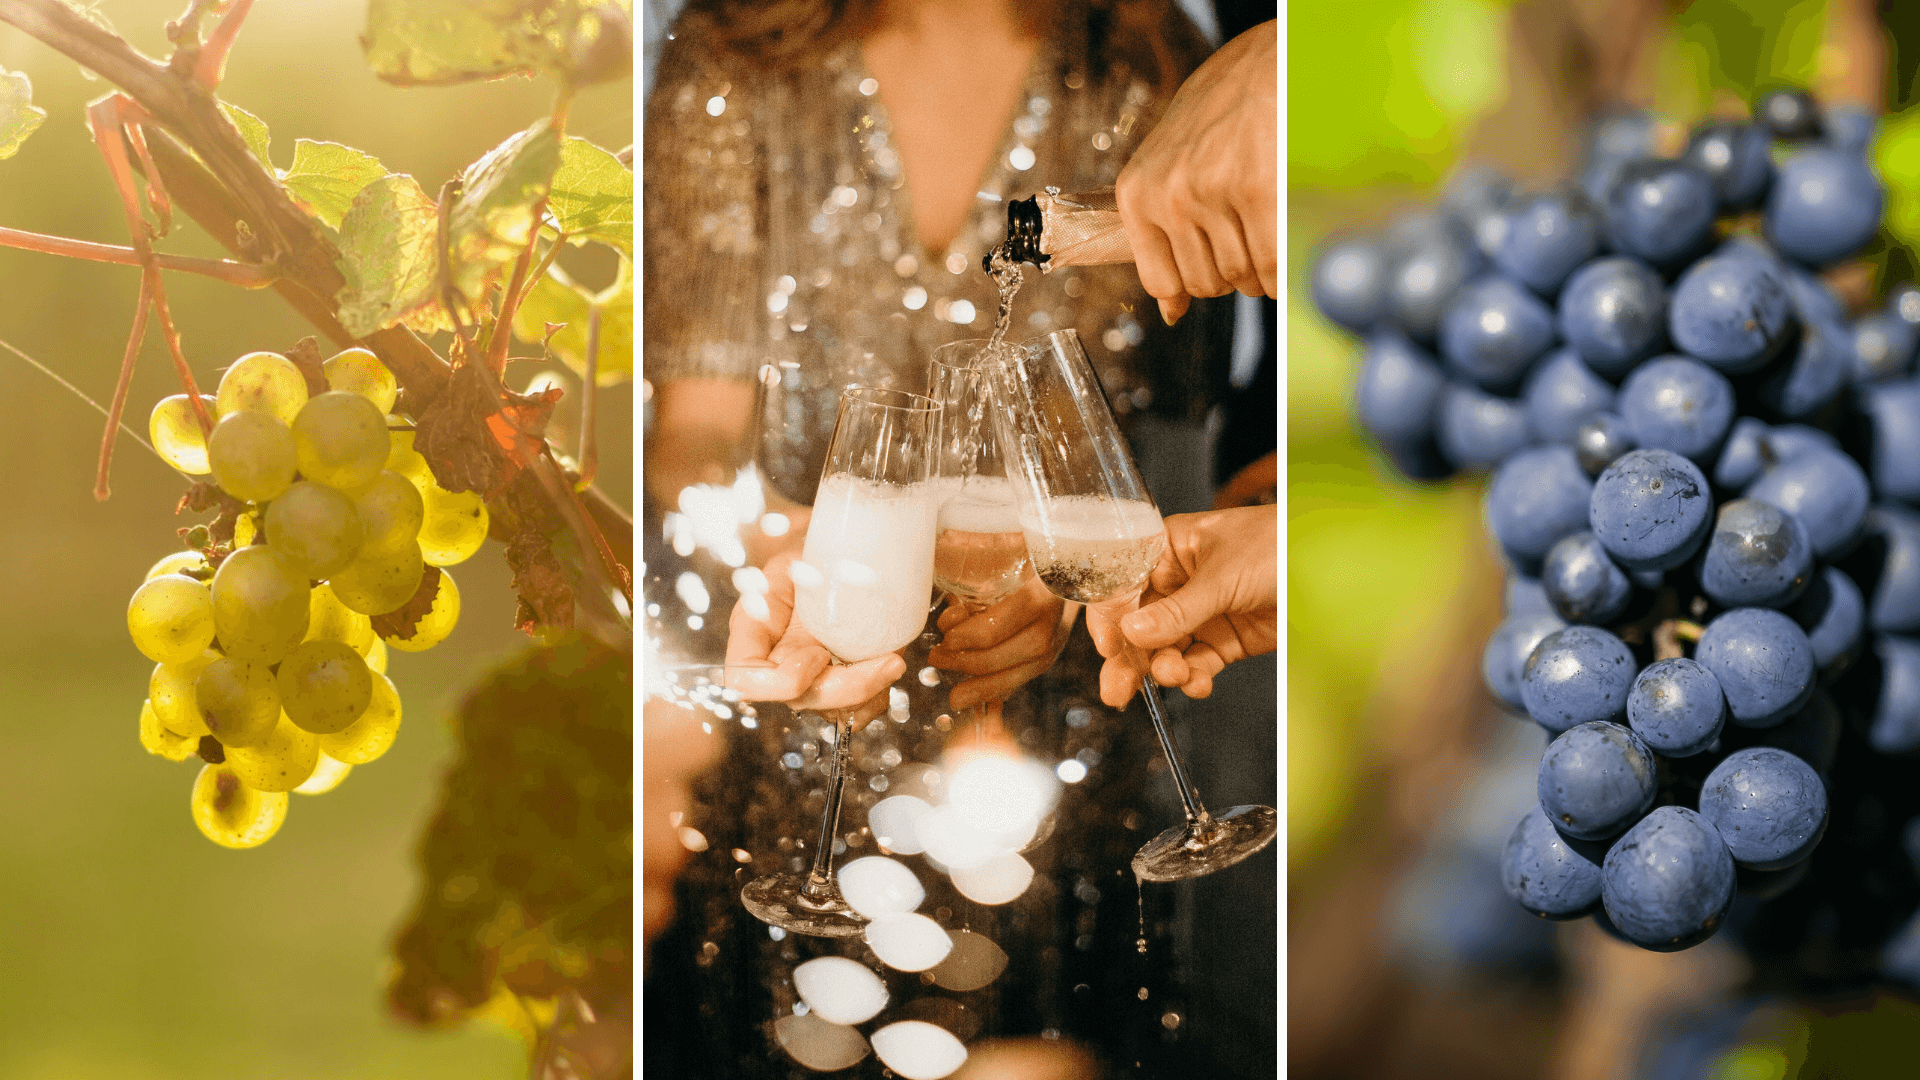 Grapes and aging methods of Prosecco and franciacorta wines